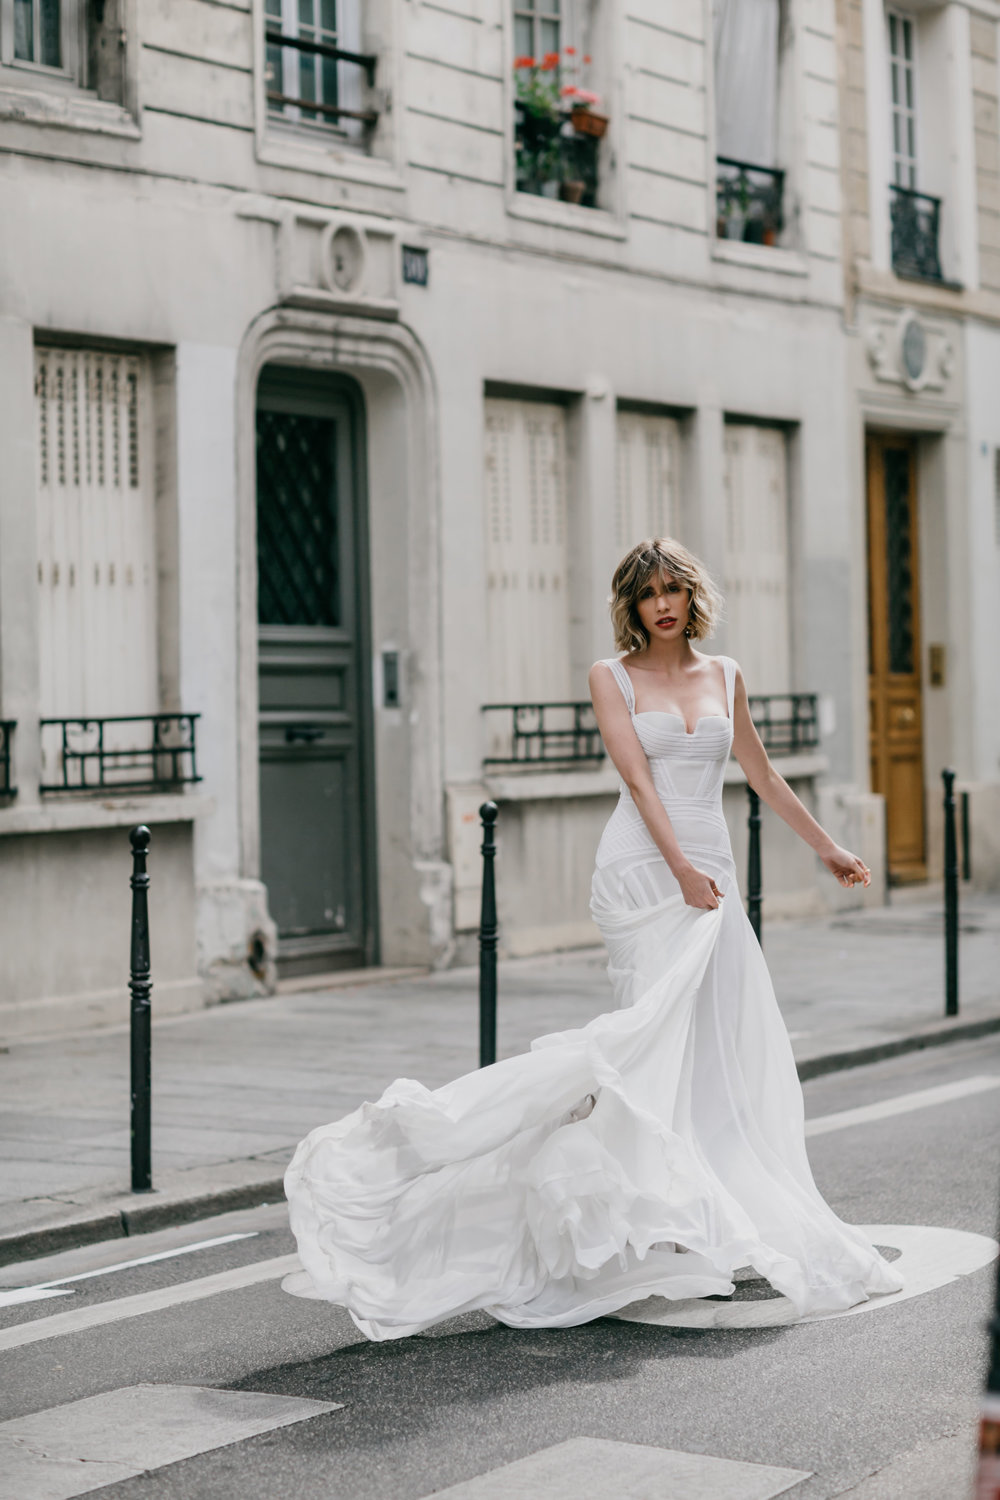 georgia-young-couture-bride-wedding-dressilookbook-paris-ritual-bride-34